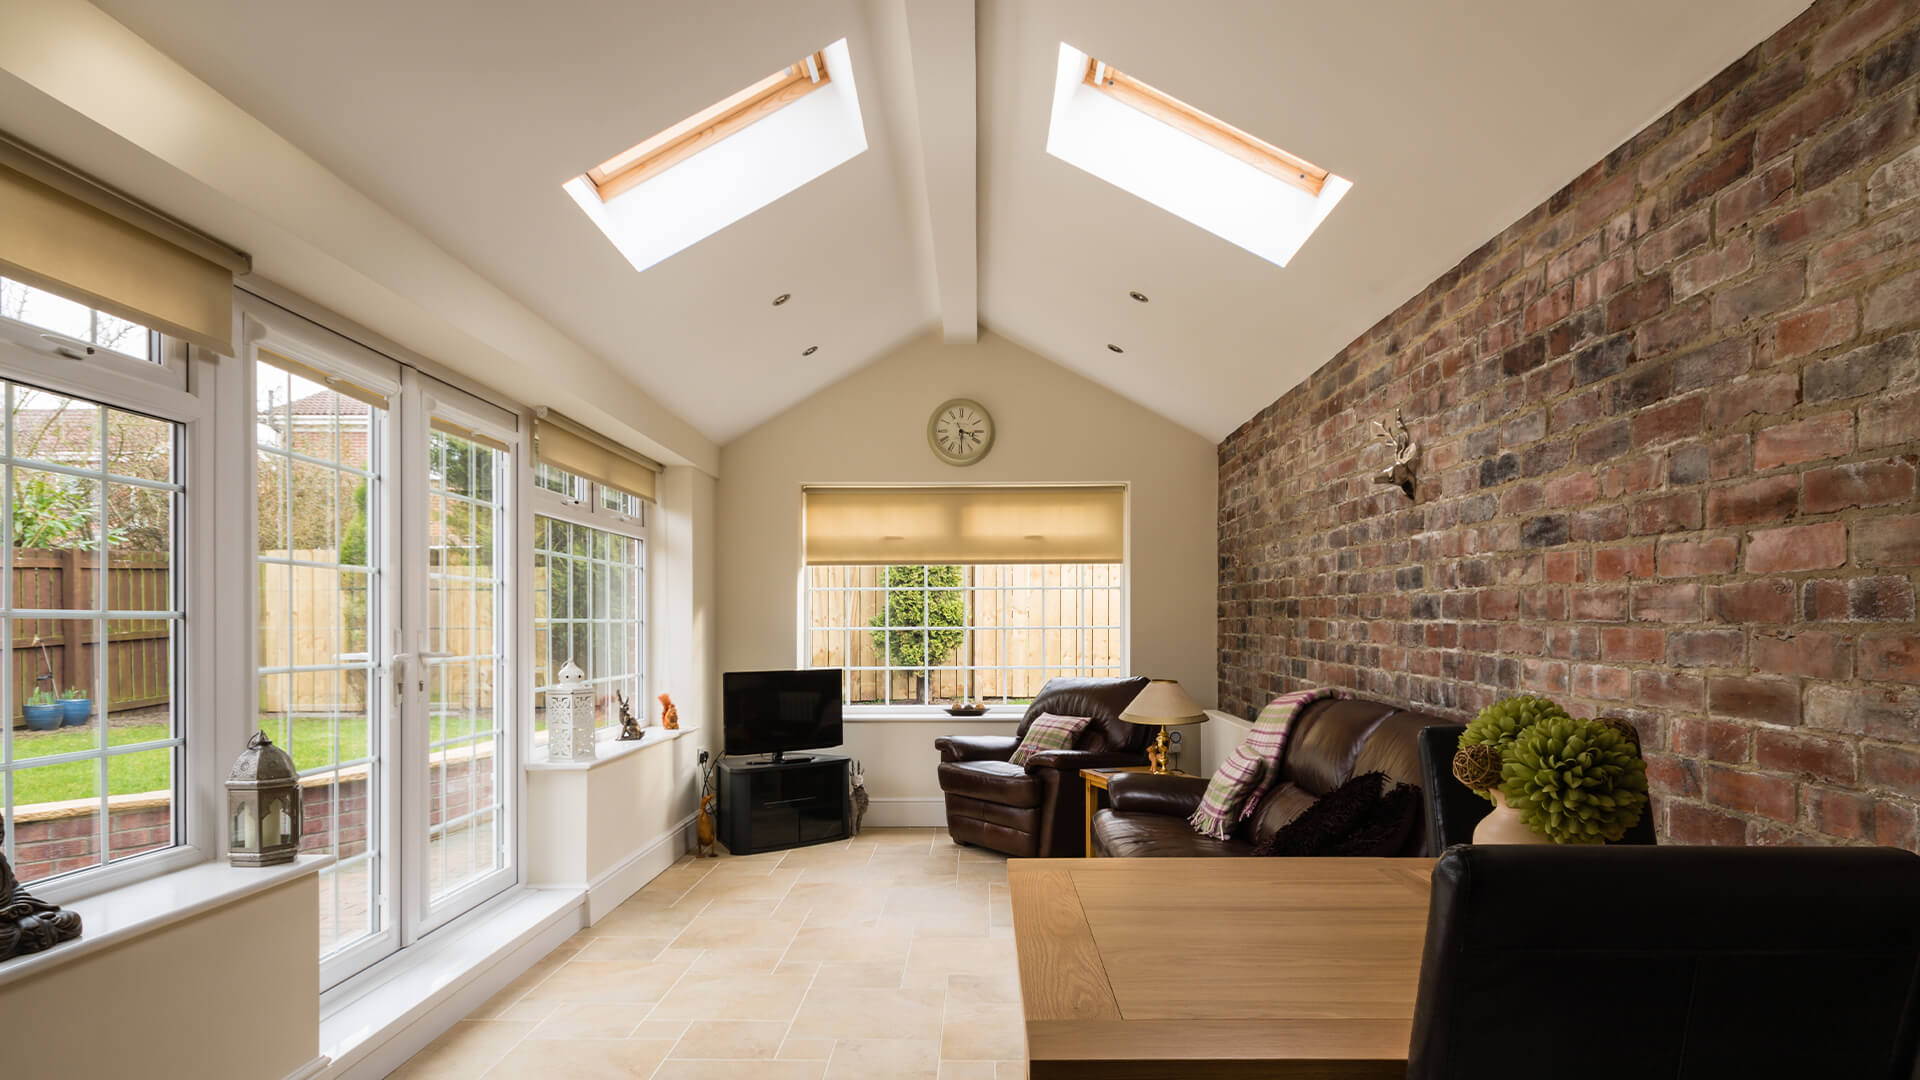 Extension room in a home, with exposed brick and large windows